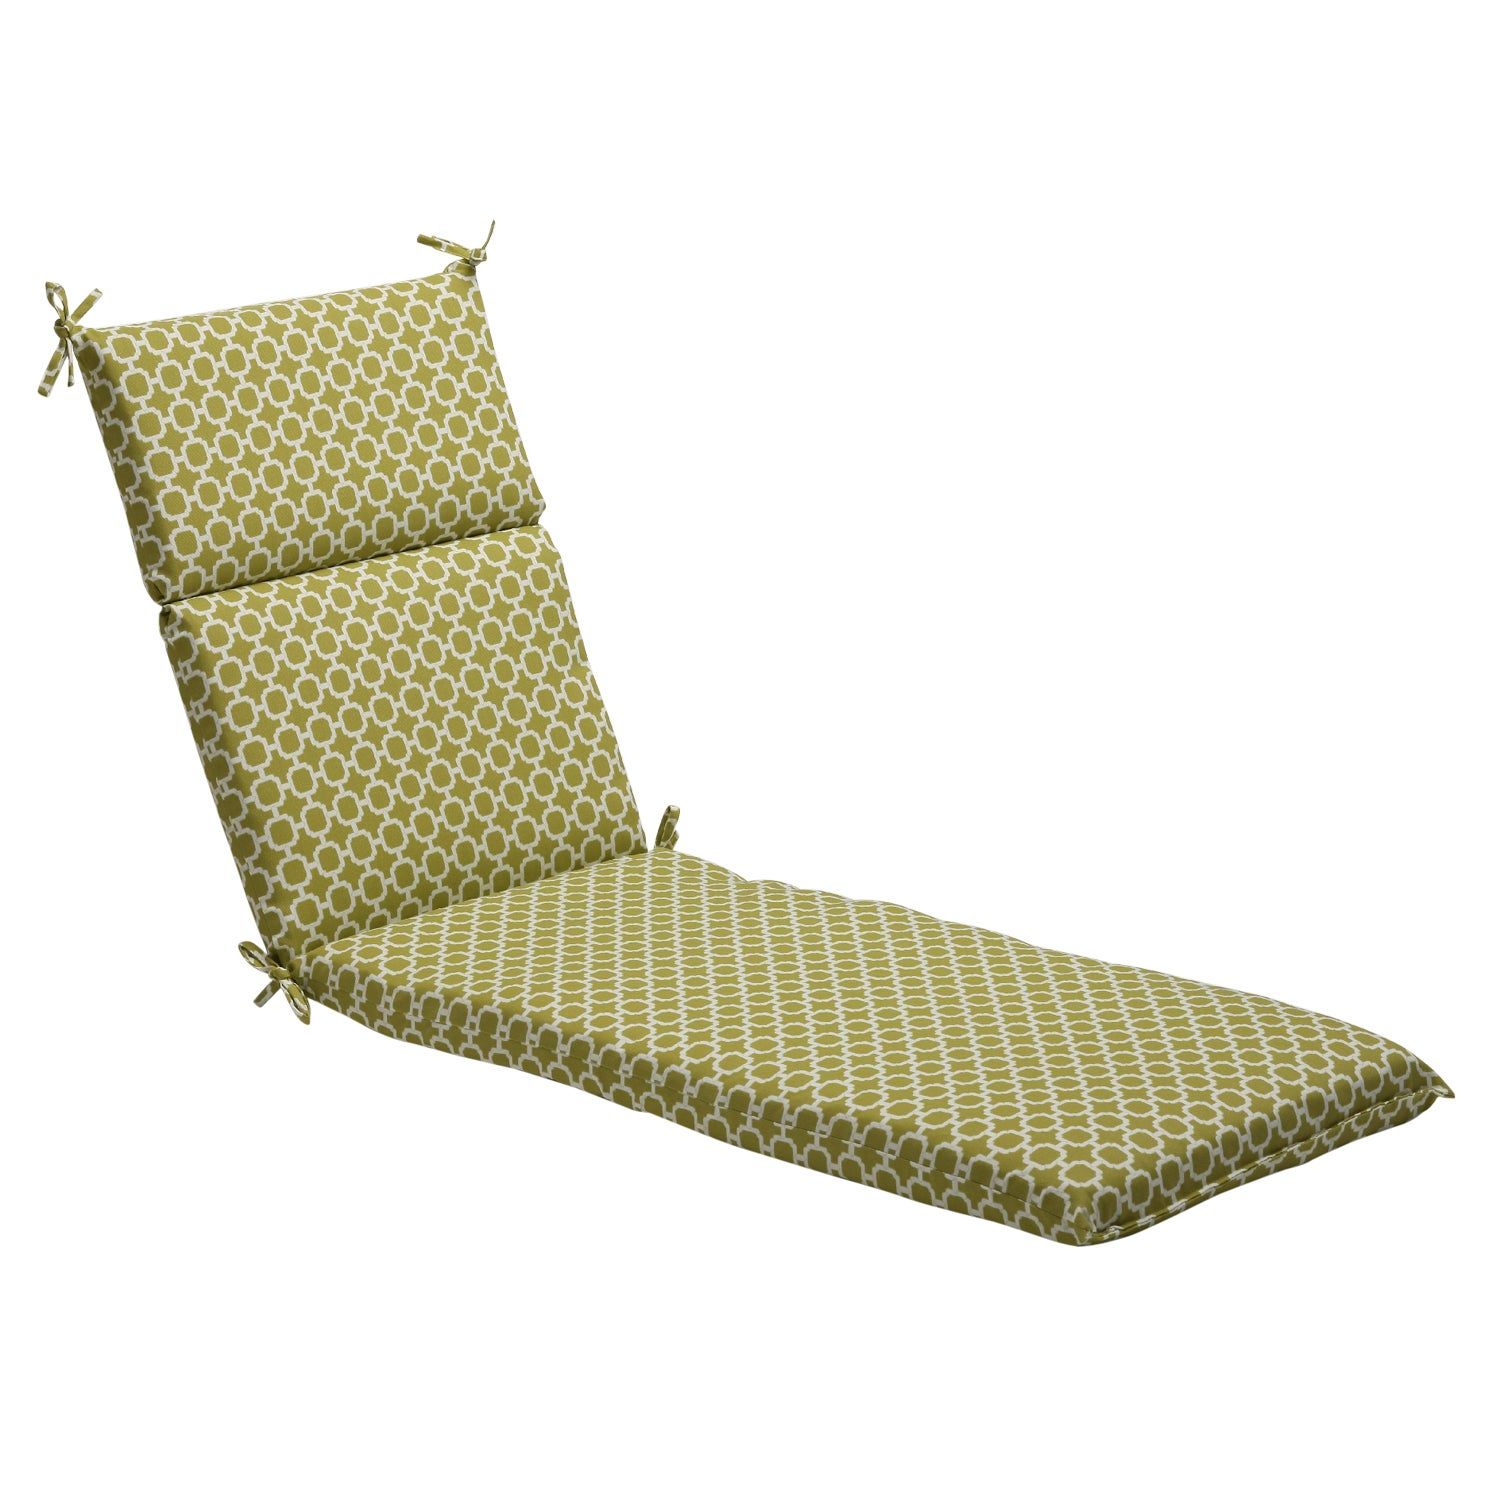 Pillow Perfect Green/ White Geometric Outdoor Chaise Lounge Cushion at Sears.com